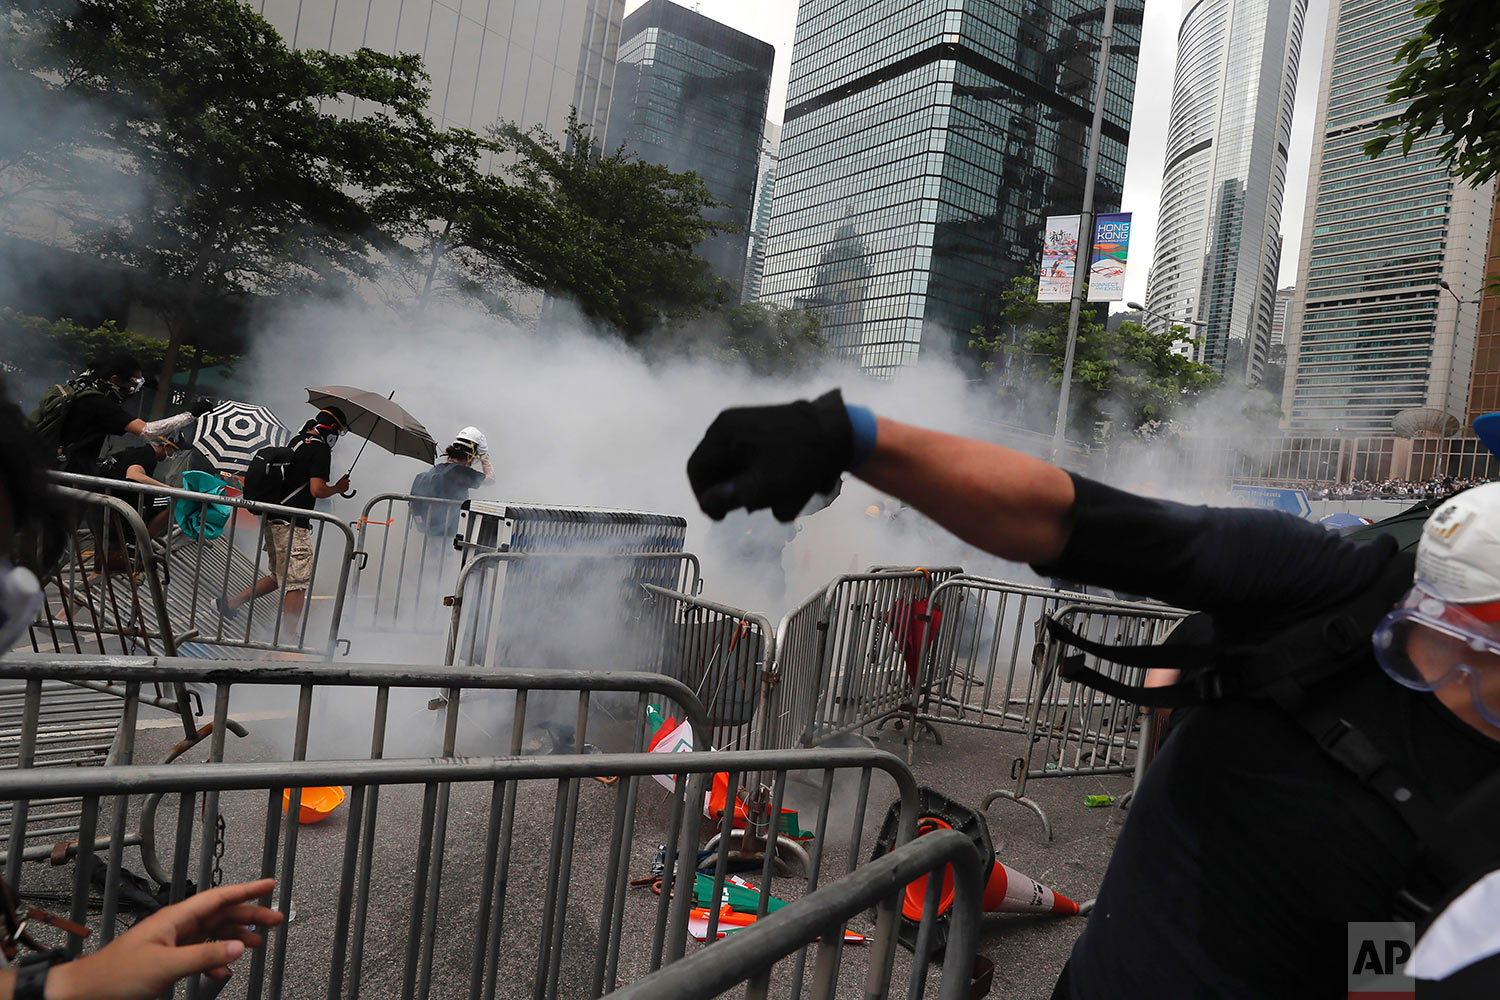 Protesters react to tear gas during a massive protest in Hong Kong, June 12, 2019. (AP Photo/Kin Cheung)